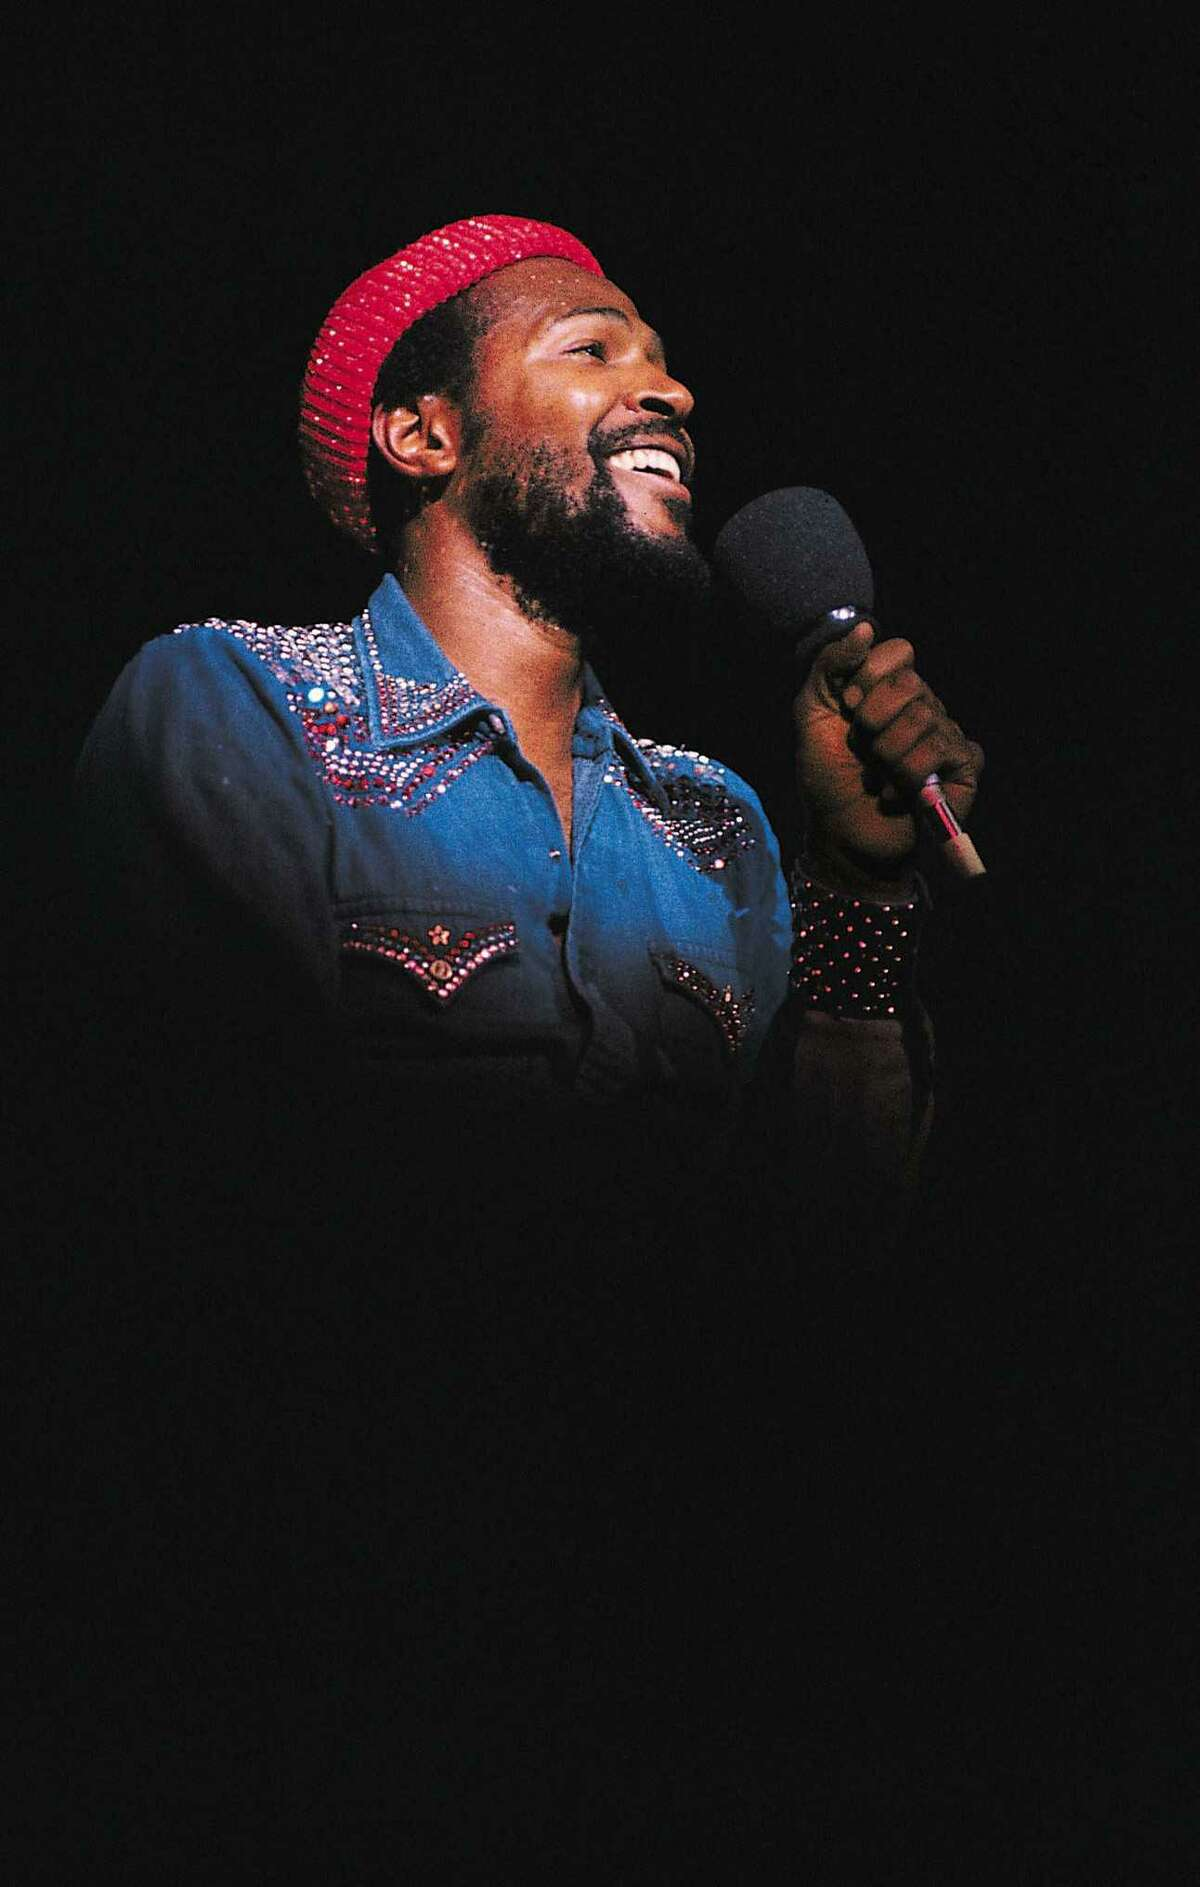 """Marvin Gaye, pictured in the early 70s. The 50th anniversary of the release of the album """"What's Going On,"""" which elevated Gaye's stature as an artist and established him as a genius, is May 21."""